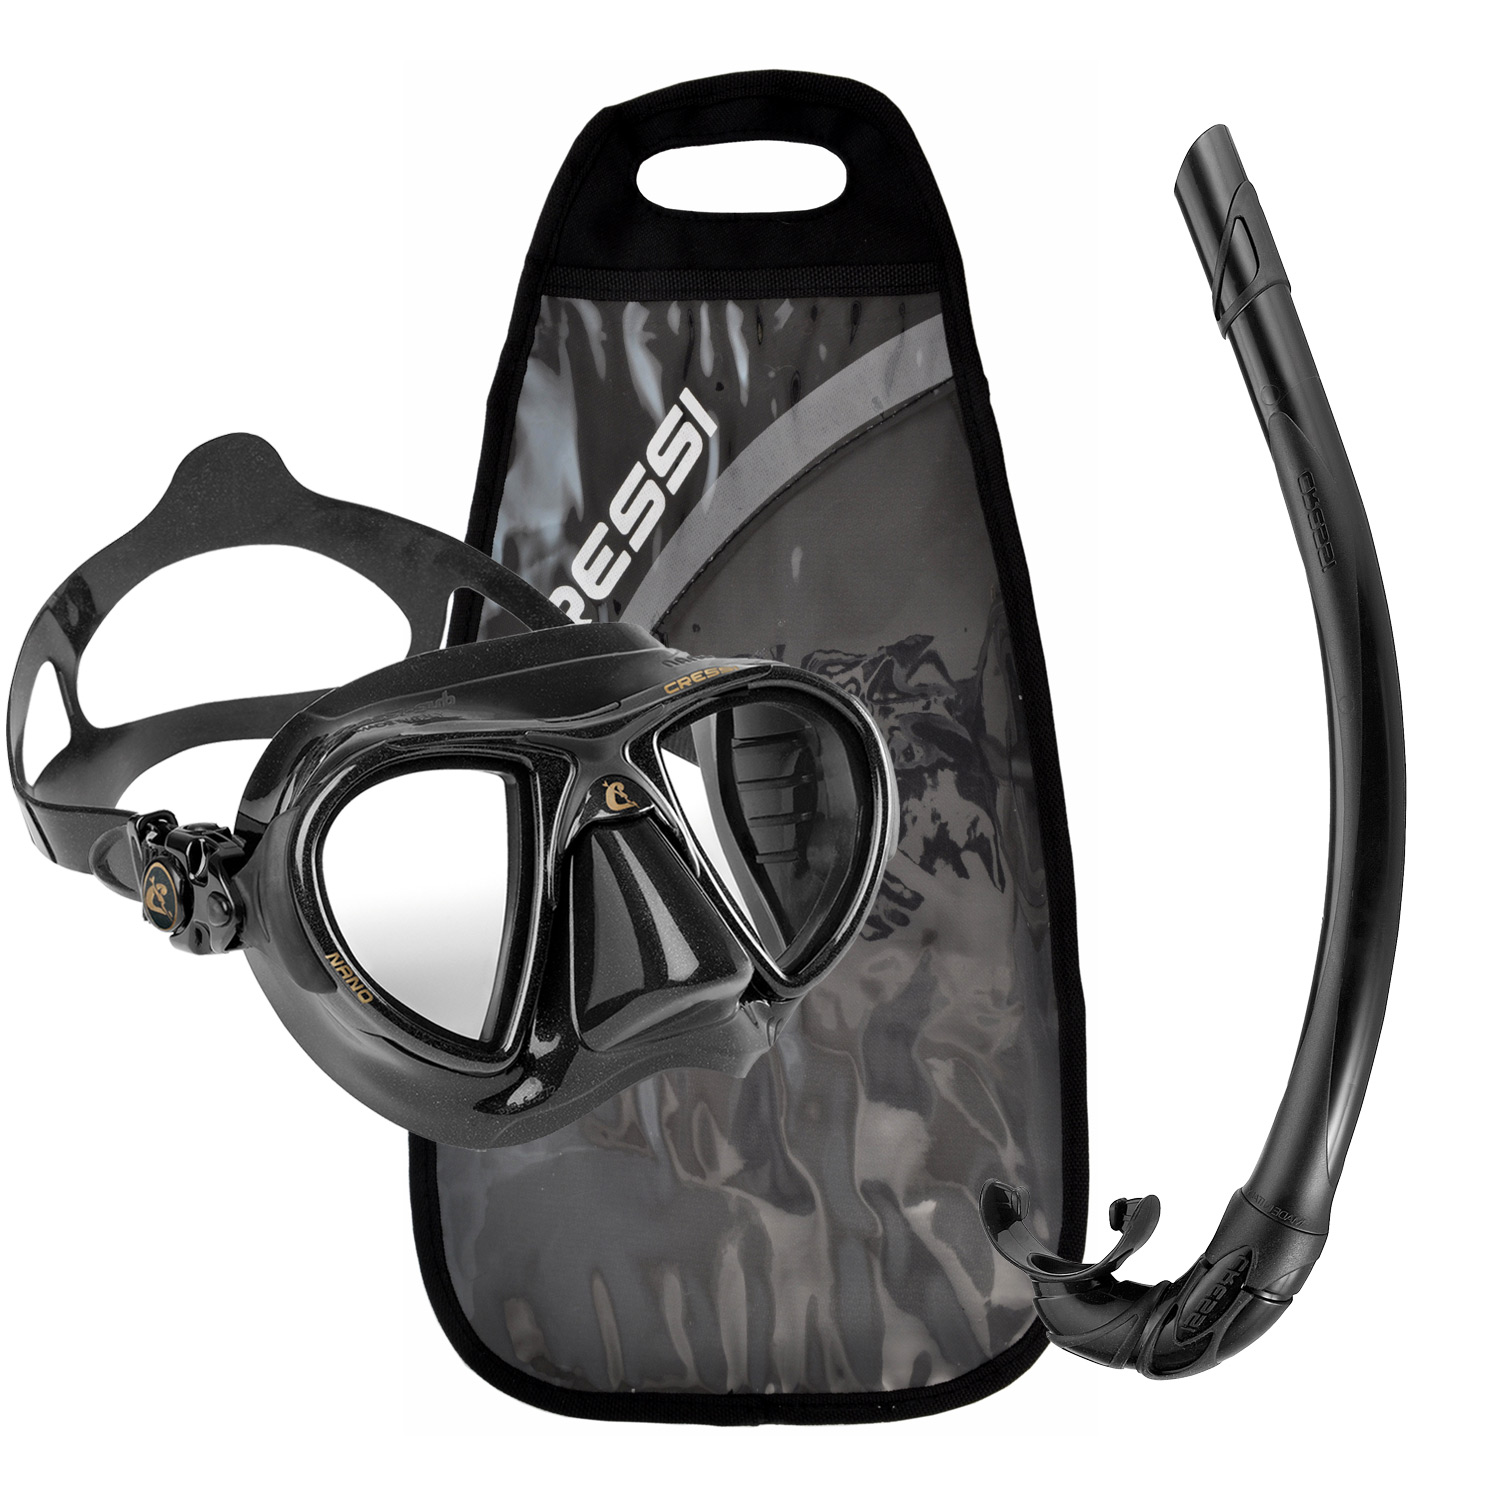 Click here to buy Cressi Nano Mask, Corsica Snorkel Package.